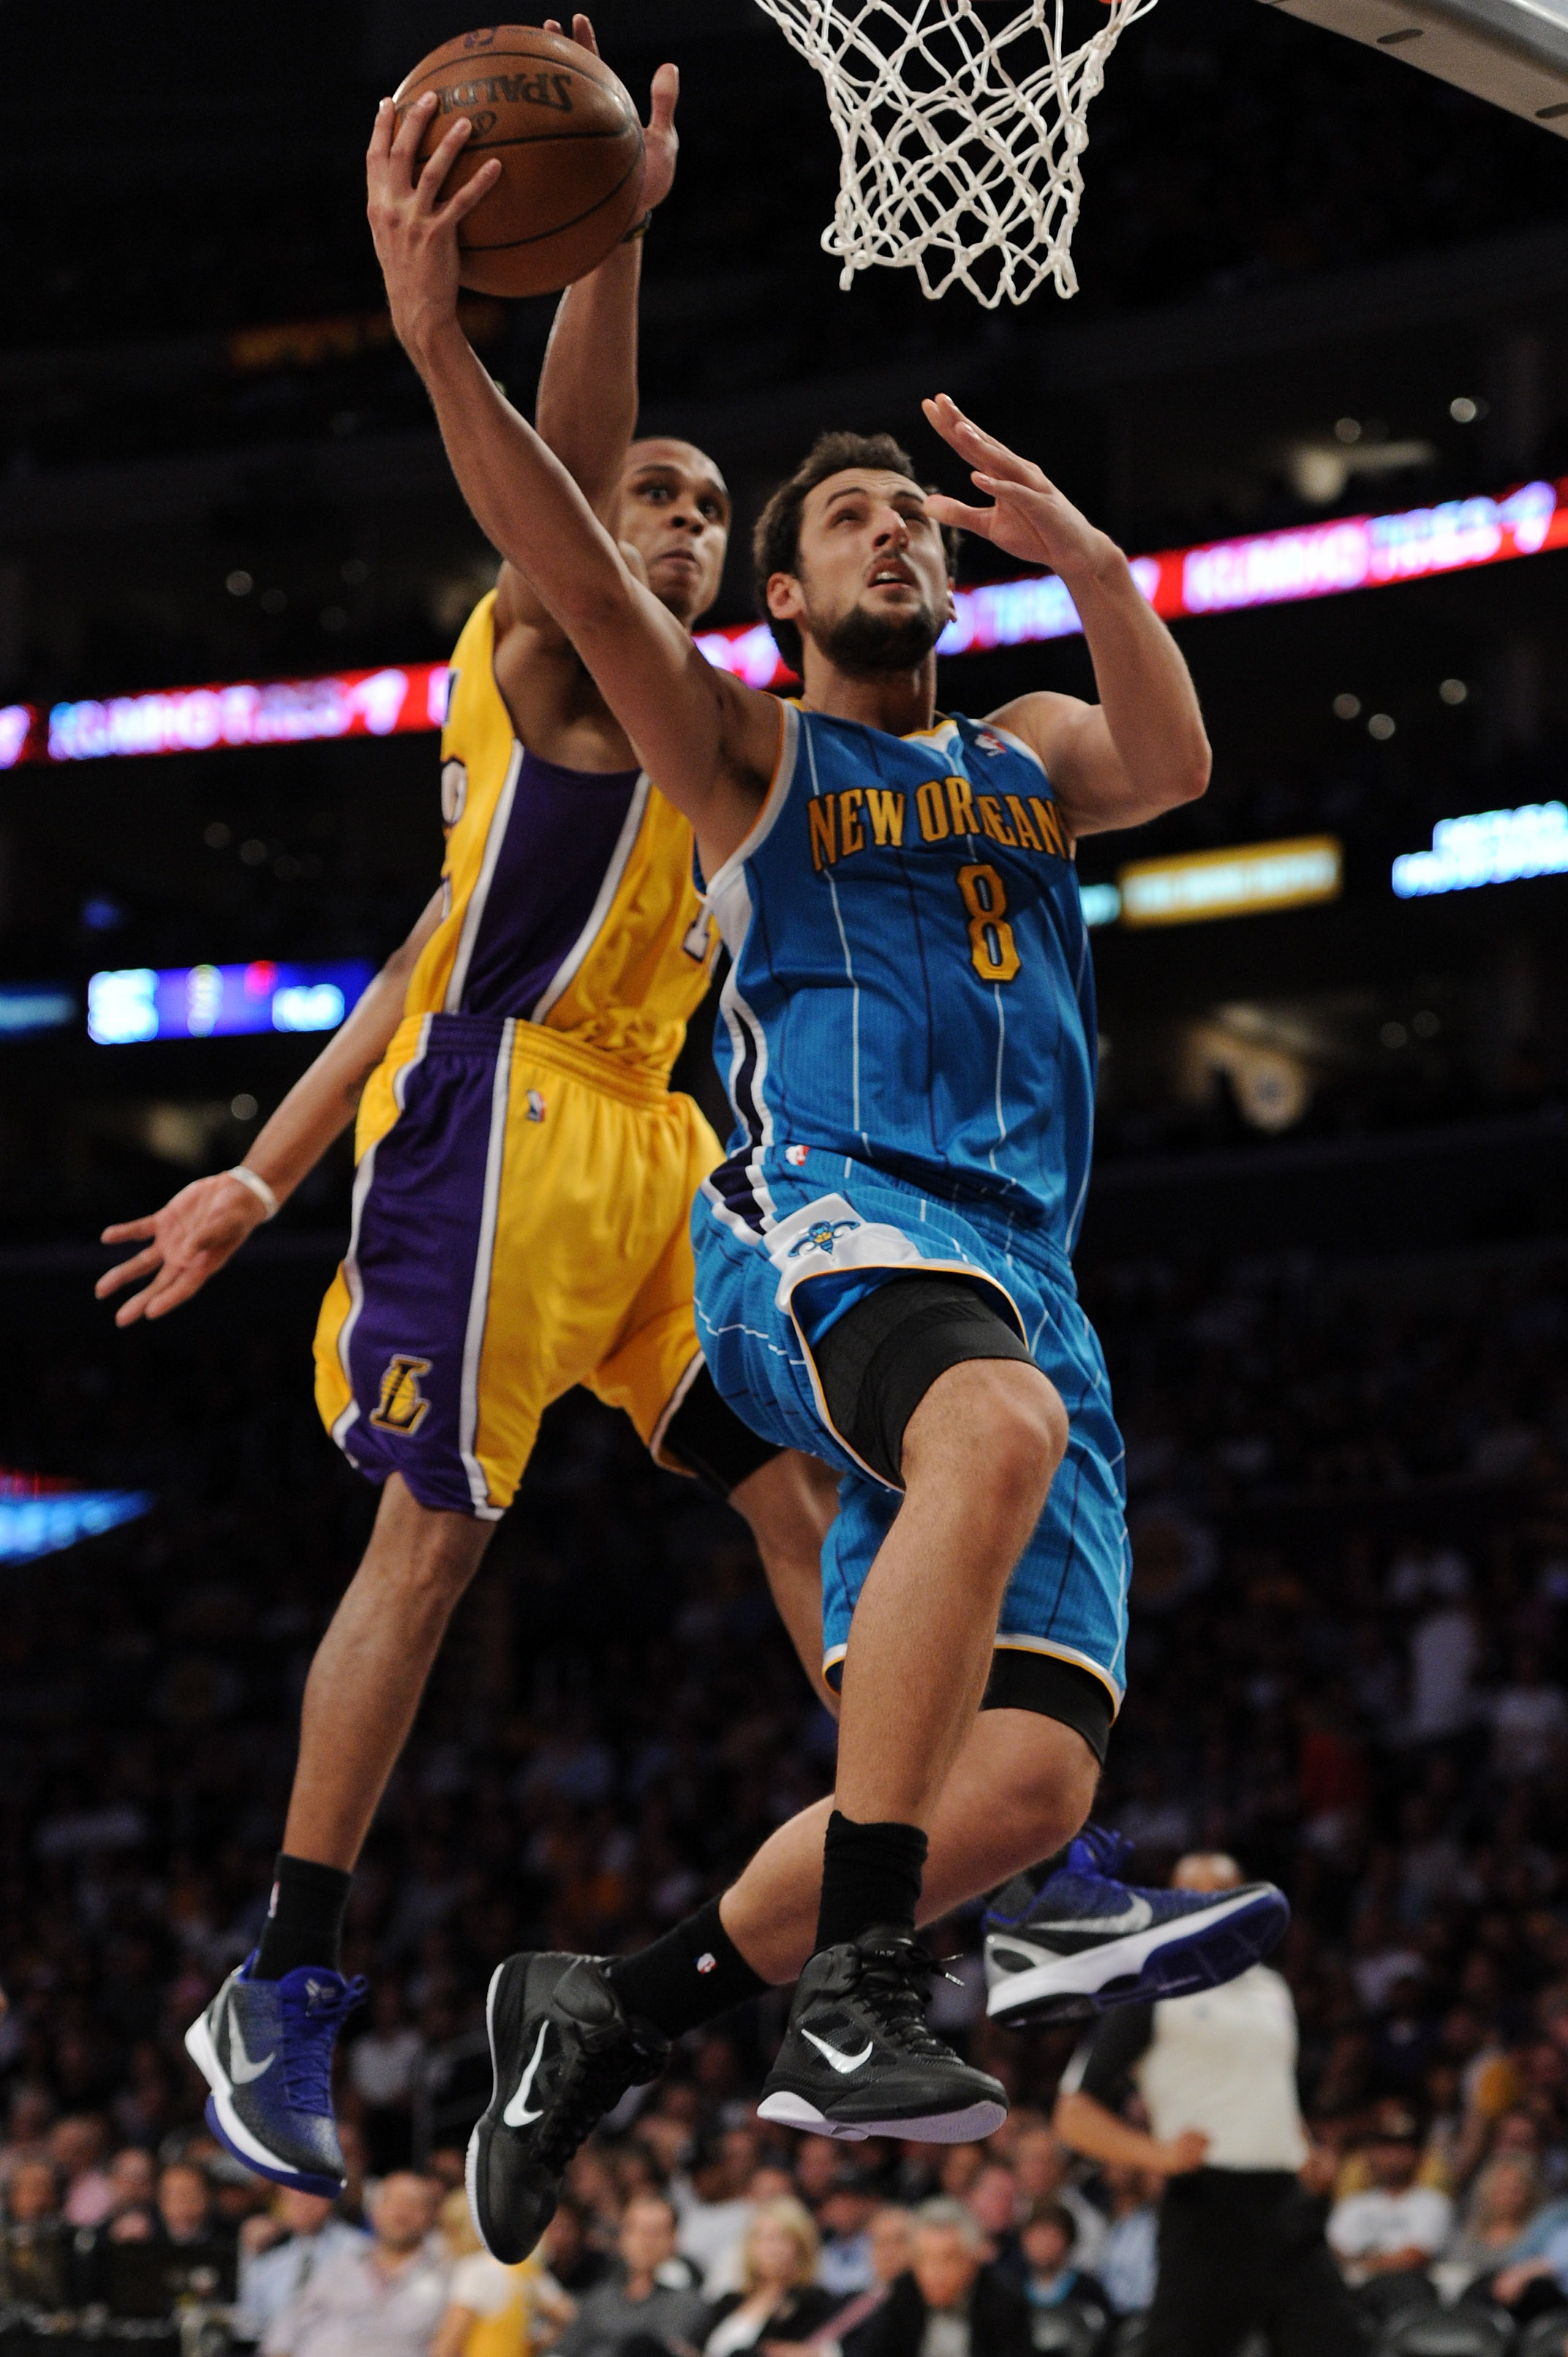 LOS ANGELES, CA - APRIL 26:  Marco Belinelli #8 of the New Orleans Hornets goes up for a layup in front of Shannon Brown #12 of the Los Angeles Lakers in the second half in Game Five of the Western Conference Quarterfinals in the 2011 NBA Playoffs on Apri